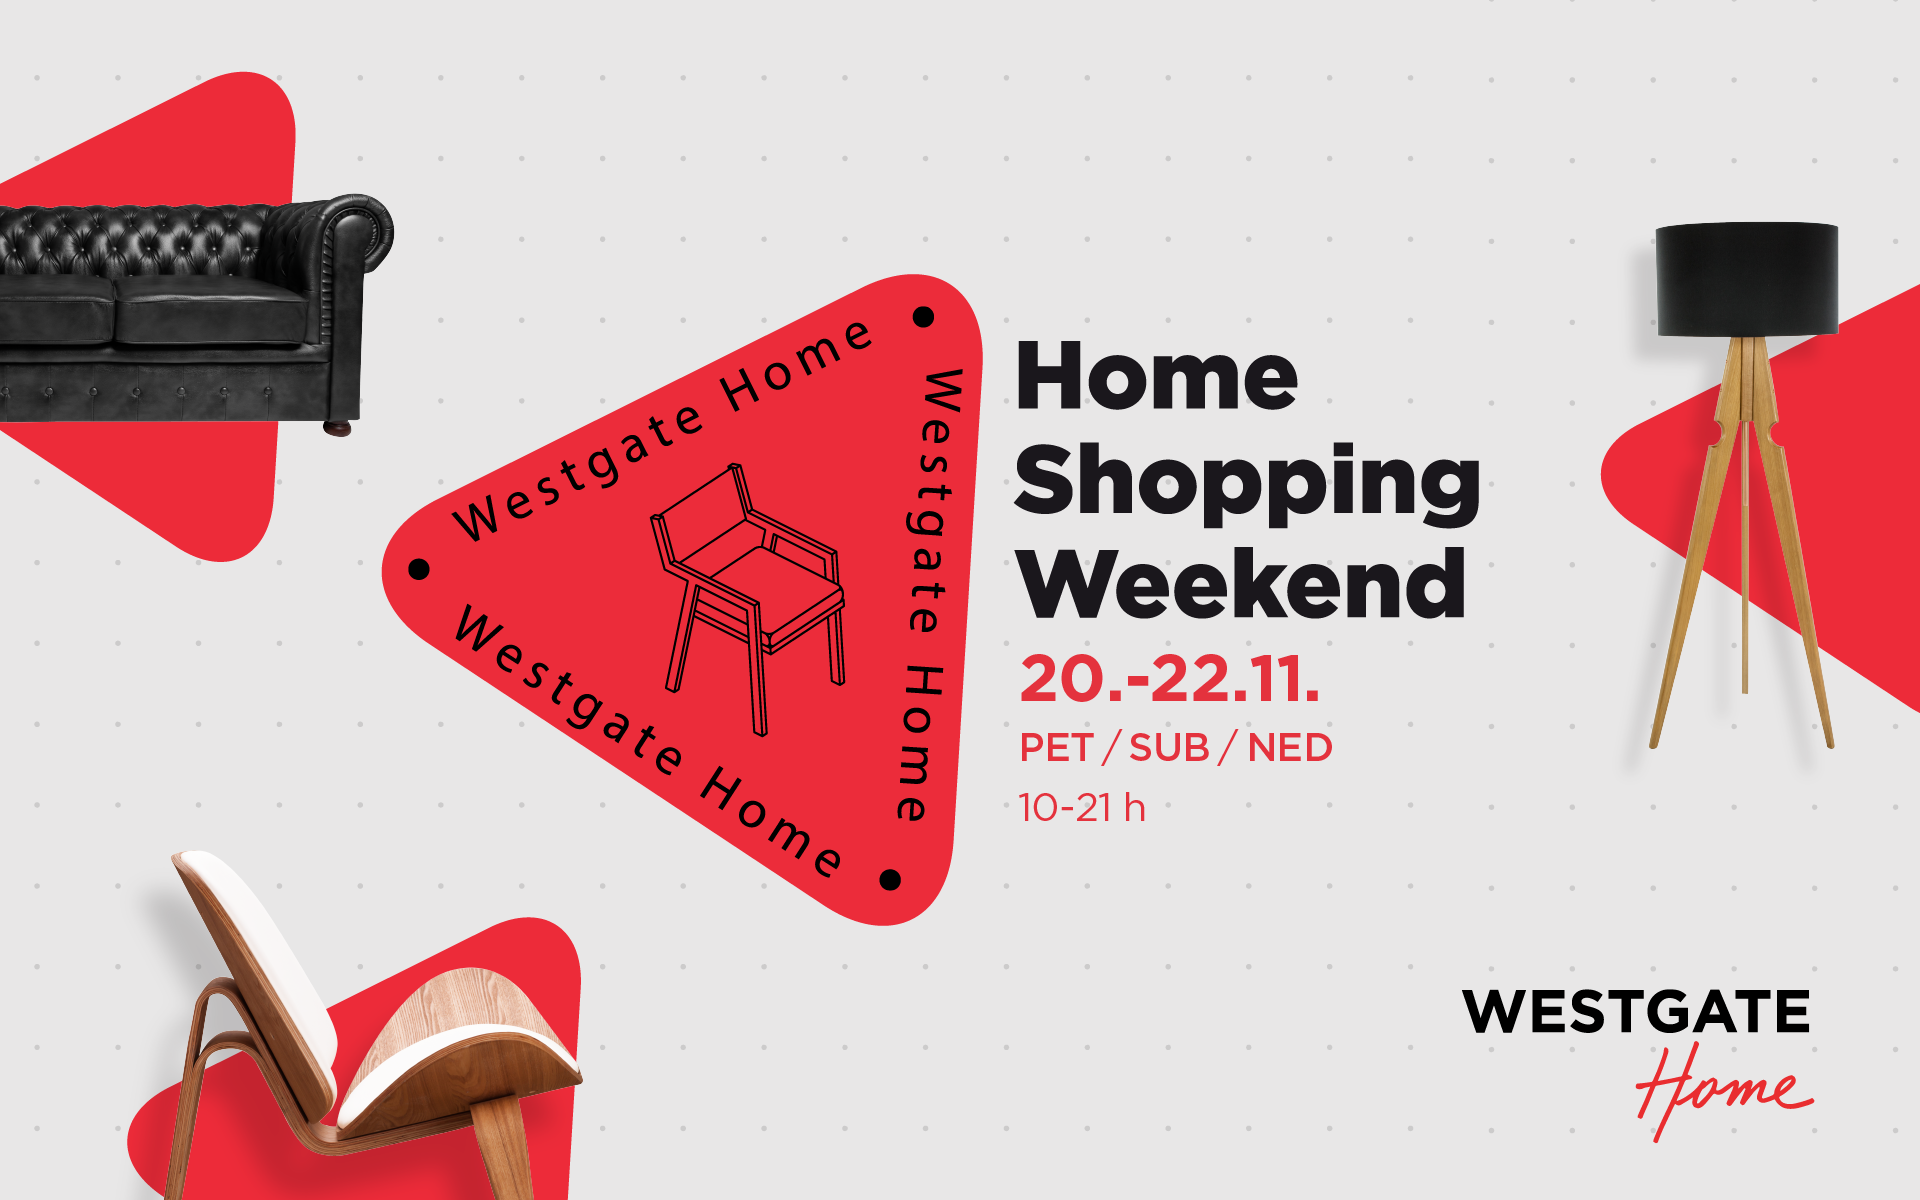 Home Shopping Weekend